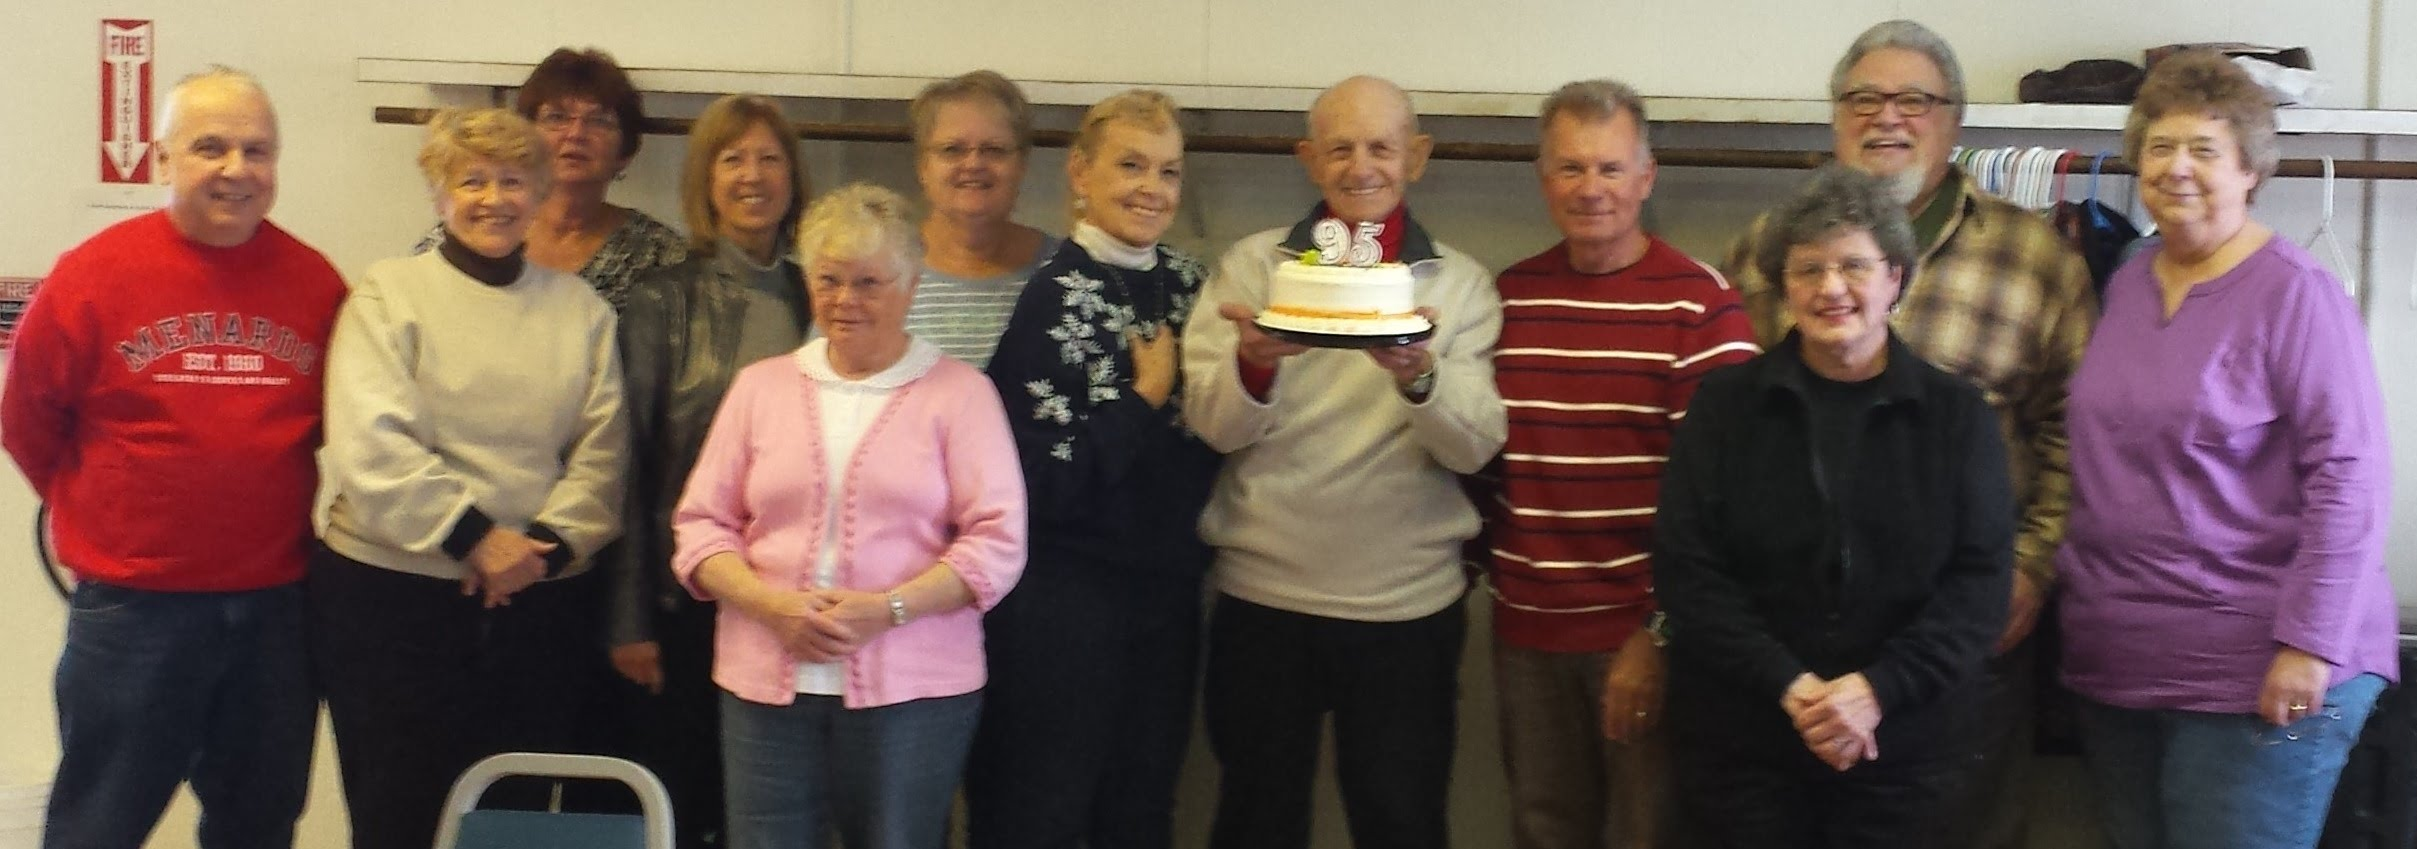 Presque Isle Country Council on Aging Board of Directors